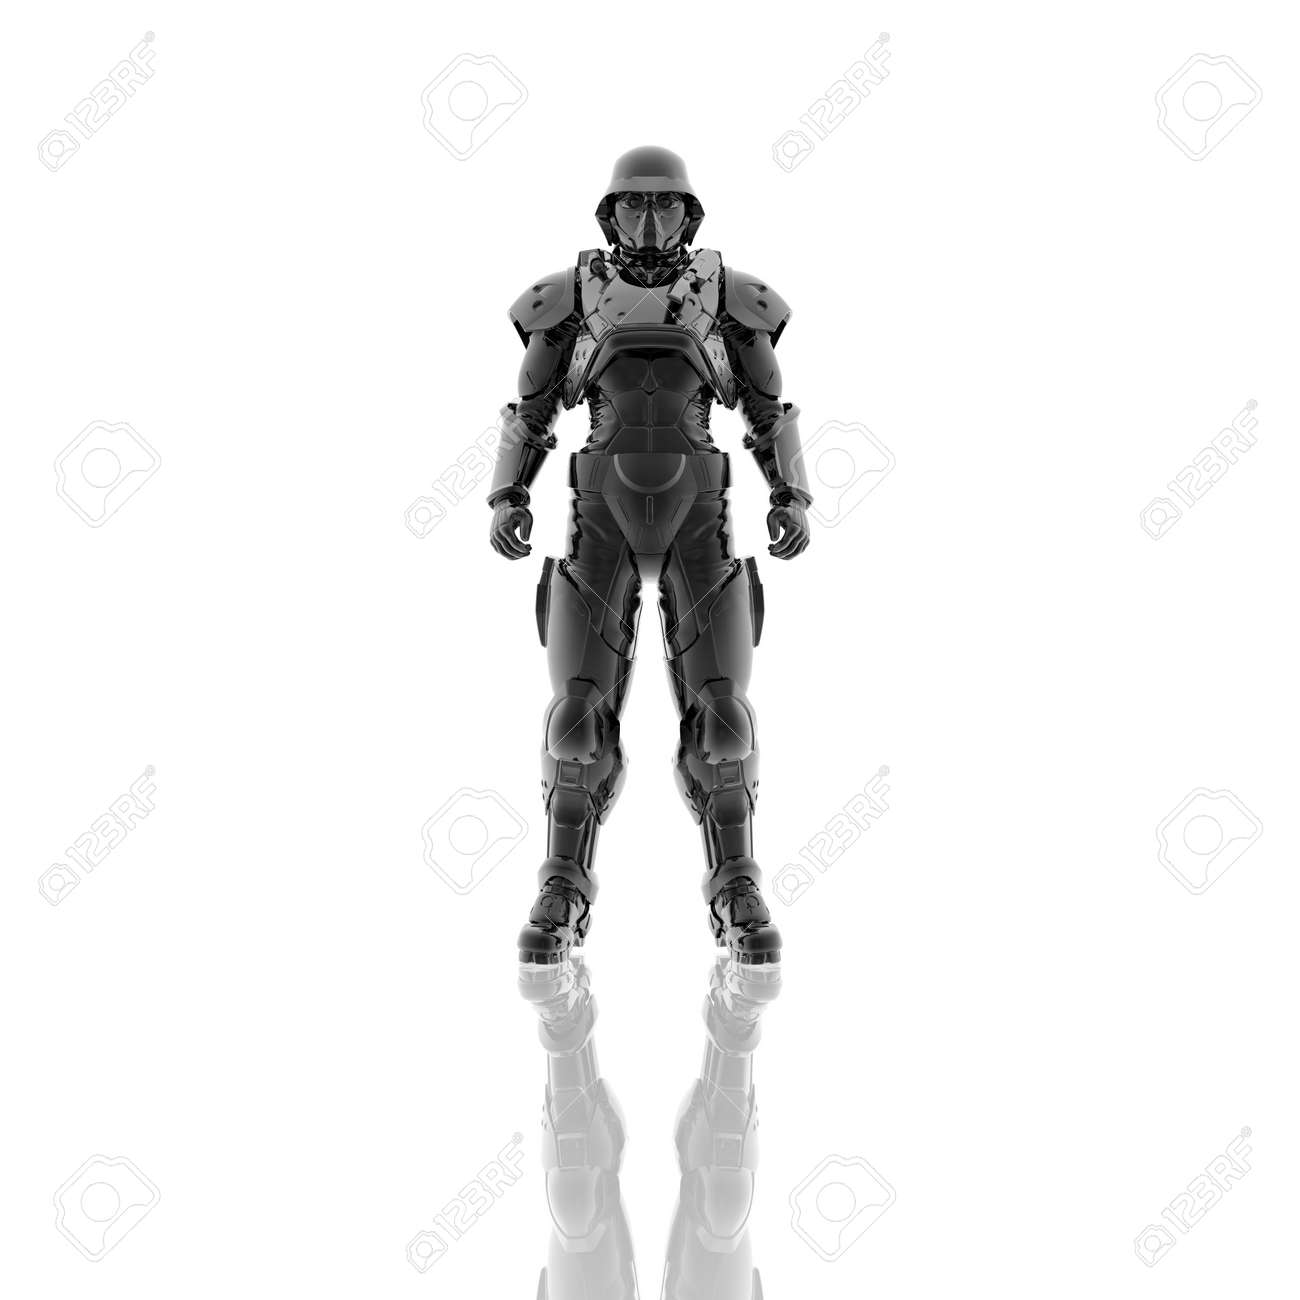 3d soldier in a gas mask isolated on a white background Stock Photo - 4439843